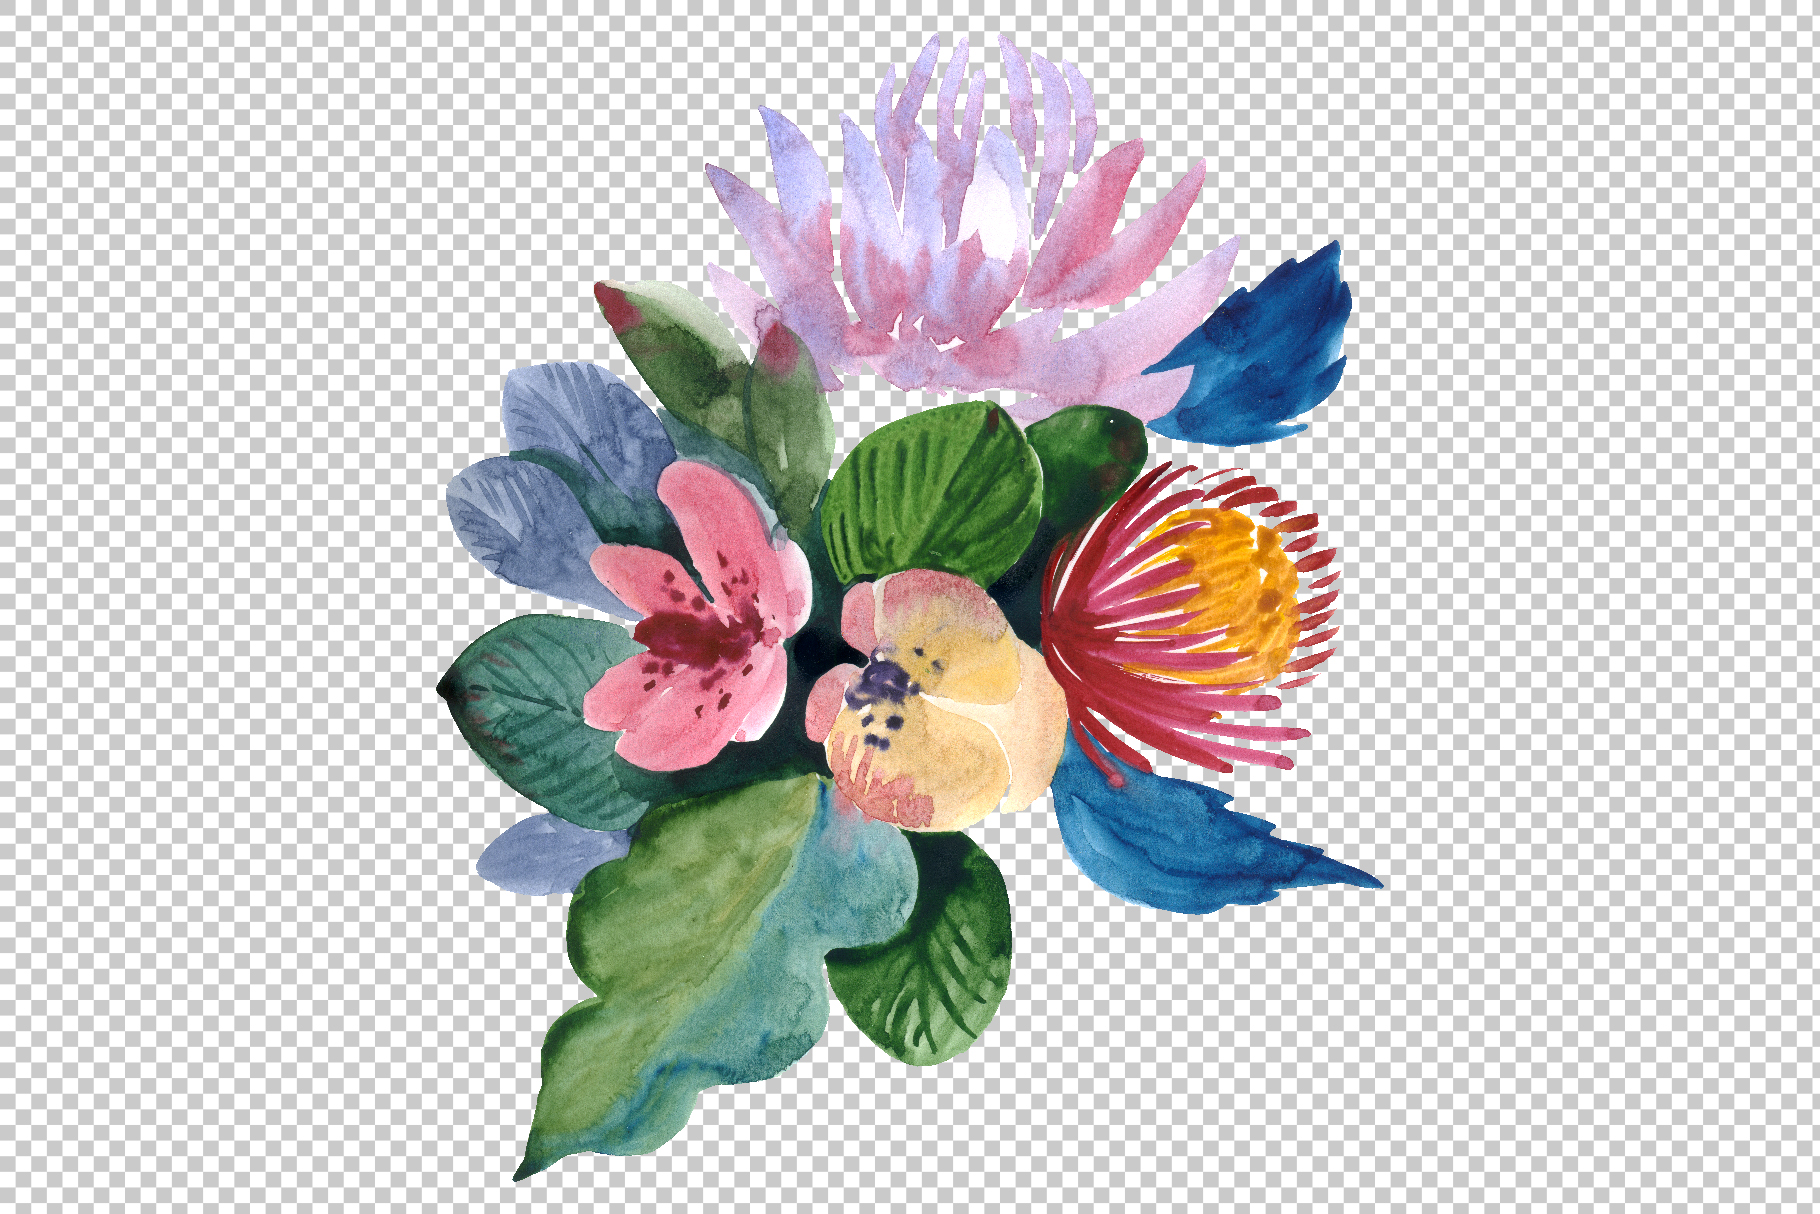 Bouquets with wildflowers, Roses, leaves Watercolor png example image 2